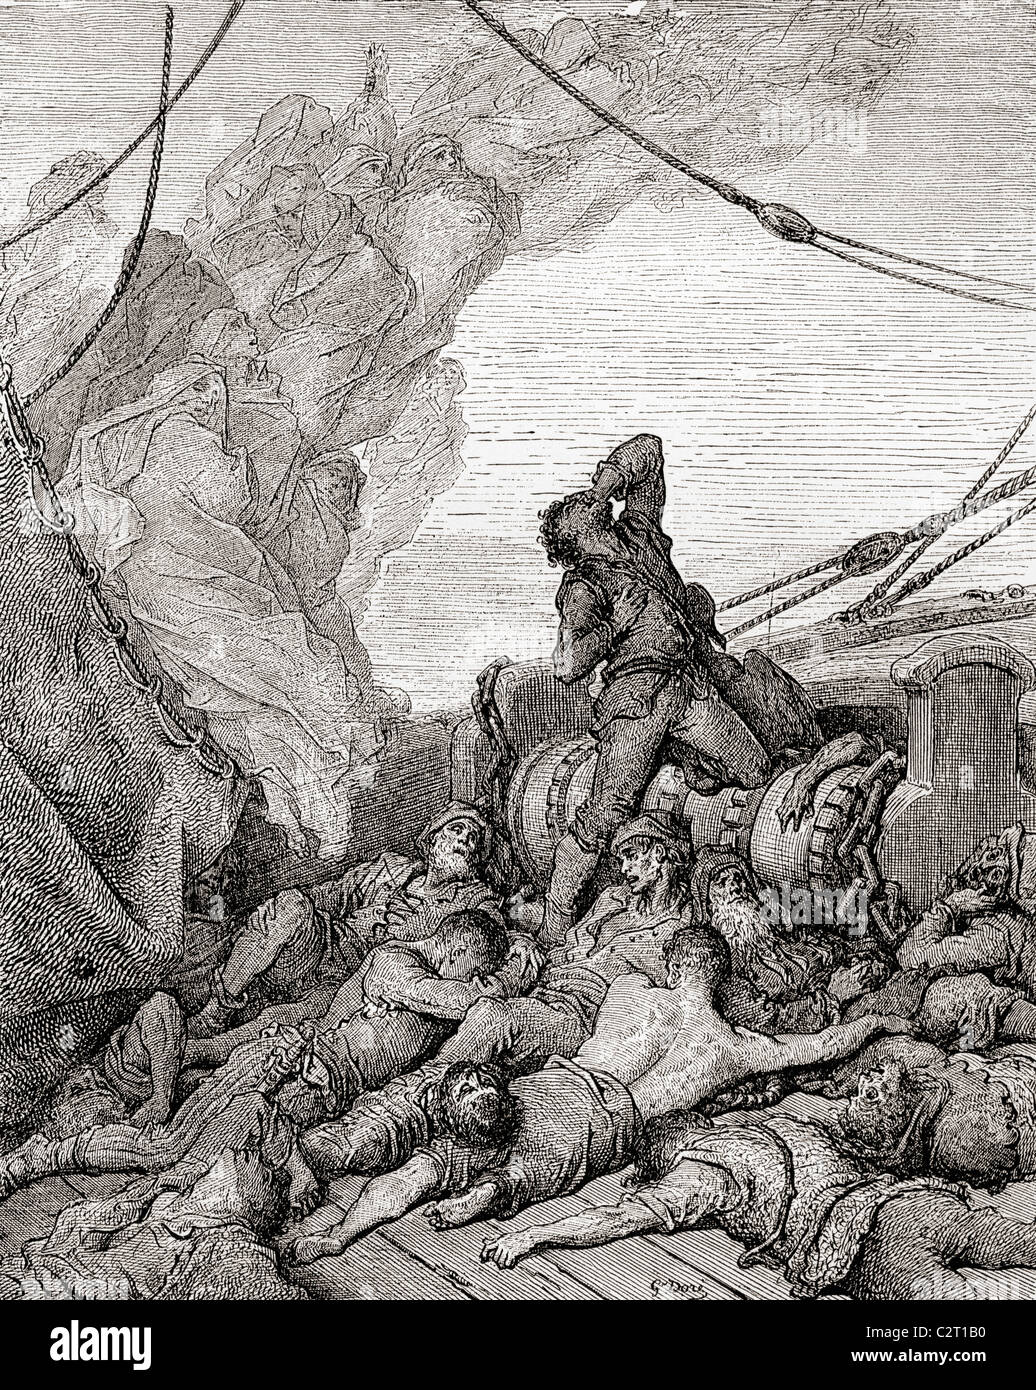 Ancient drawing stock photos ancient drawing stock images alamy after the original drawing by gustave dore for the rime of the ancient mariner biocorpaavc Images